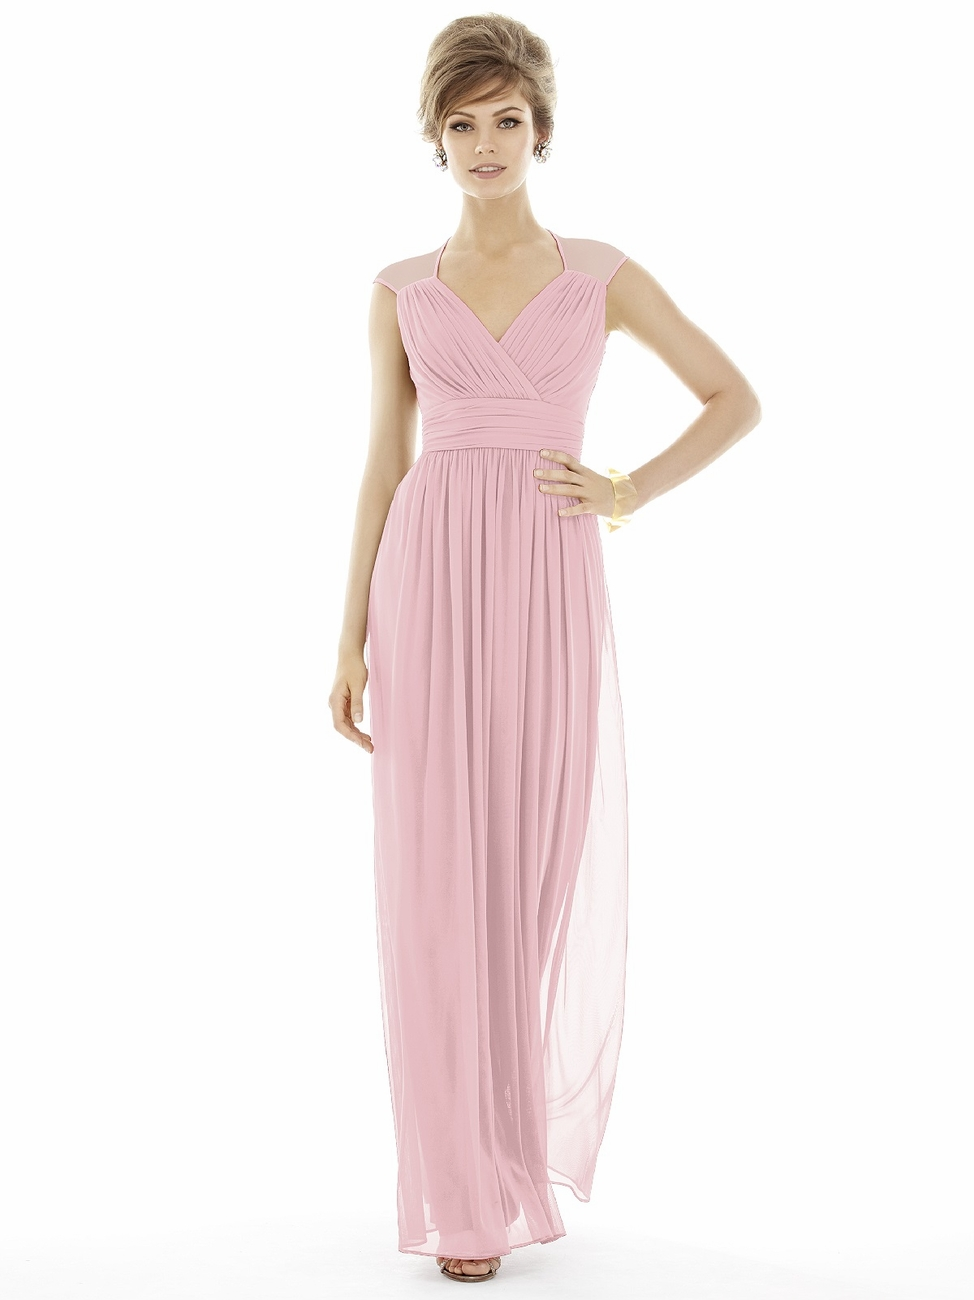 ALFRED SUNG BRIDESMAID DRESSES|ALFRED SUNG DRESSES D 693|THE DESSY ...